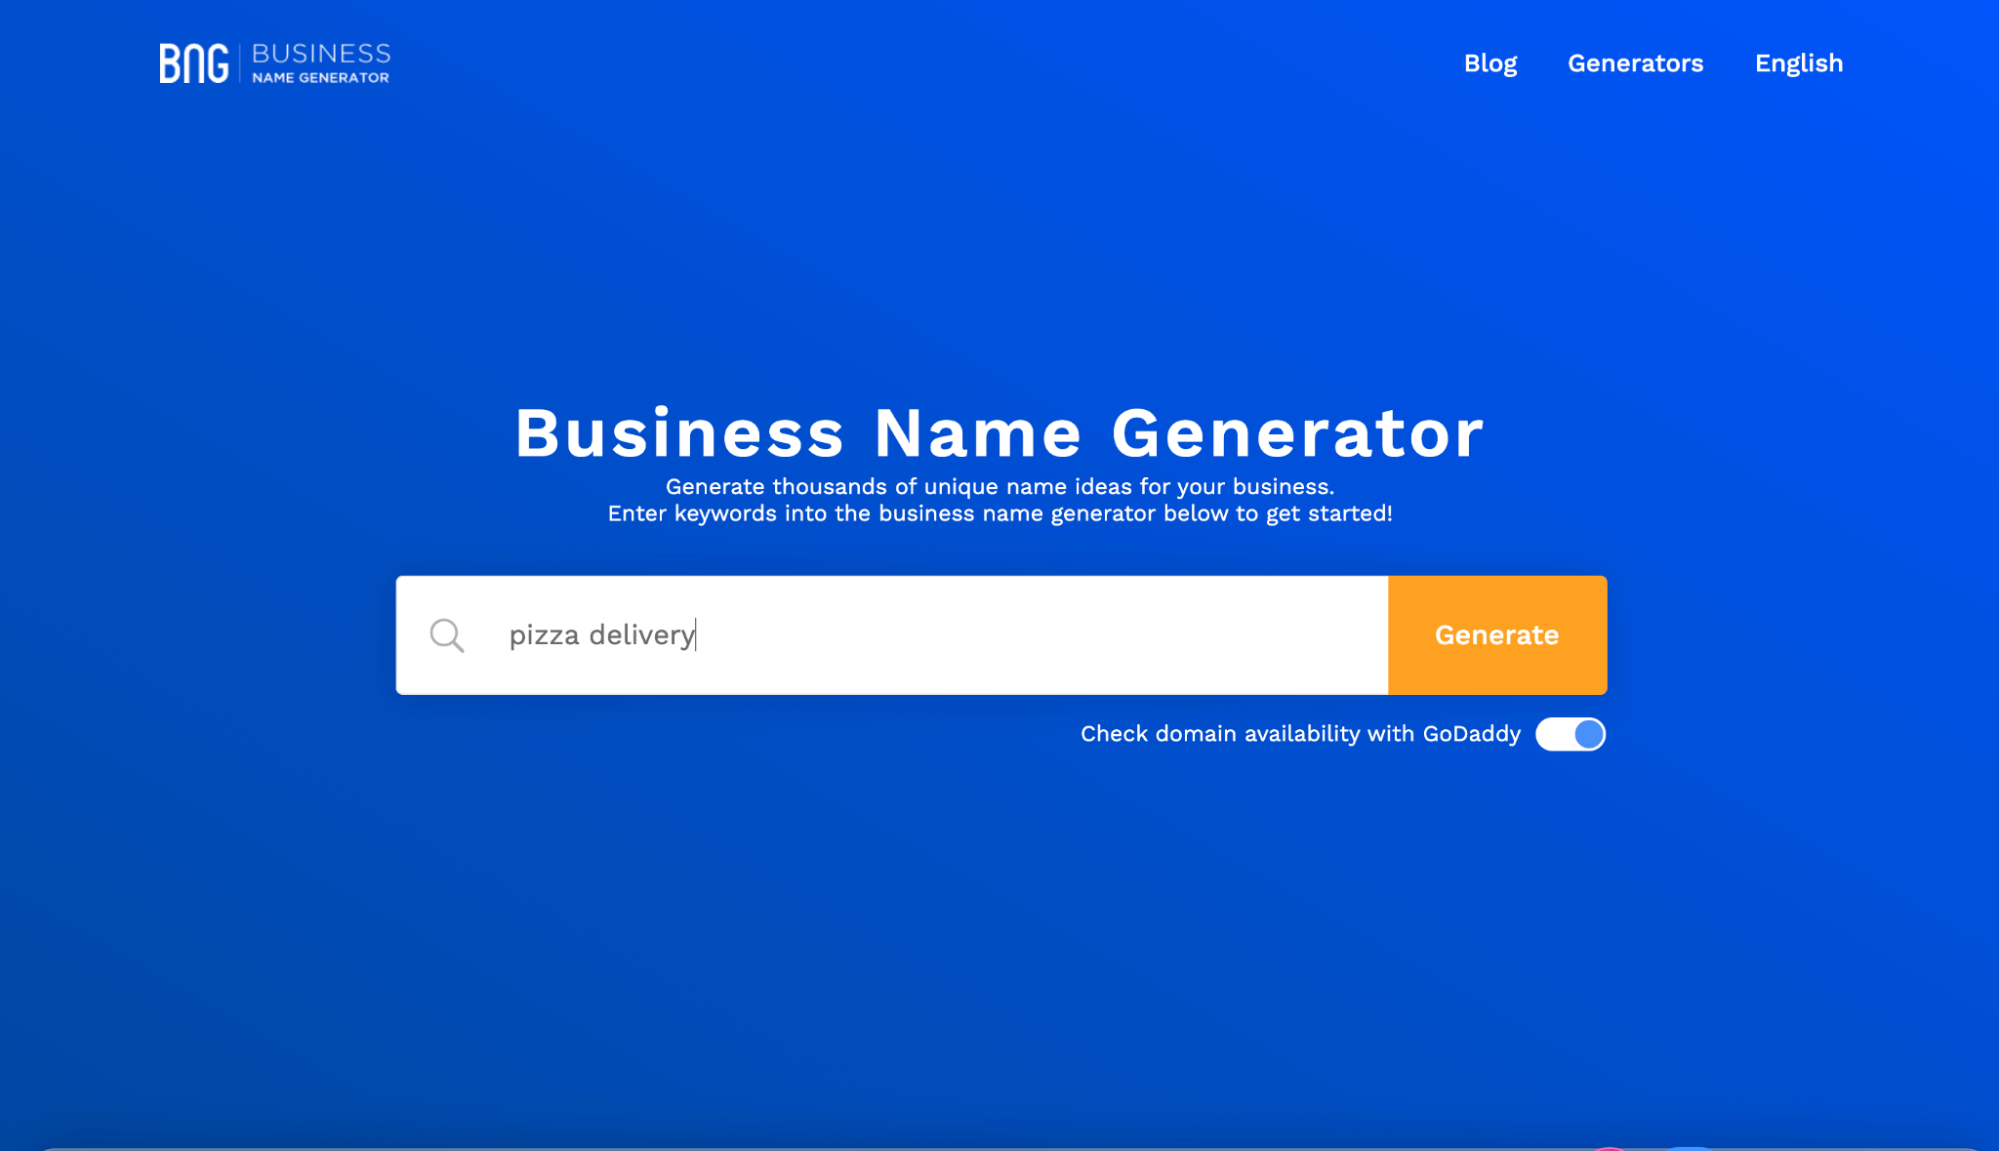 The Complete Guide to Business Name Generators